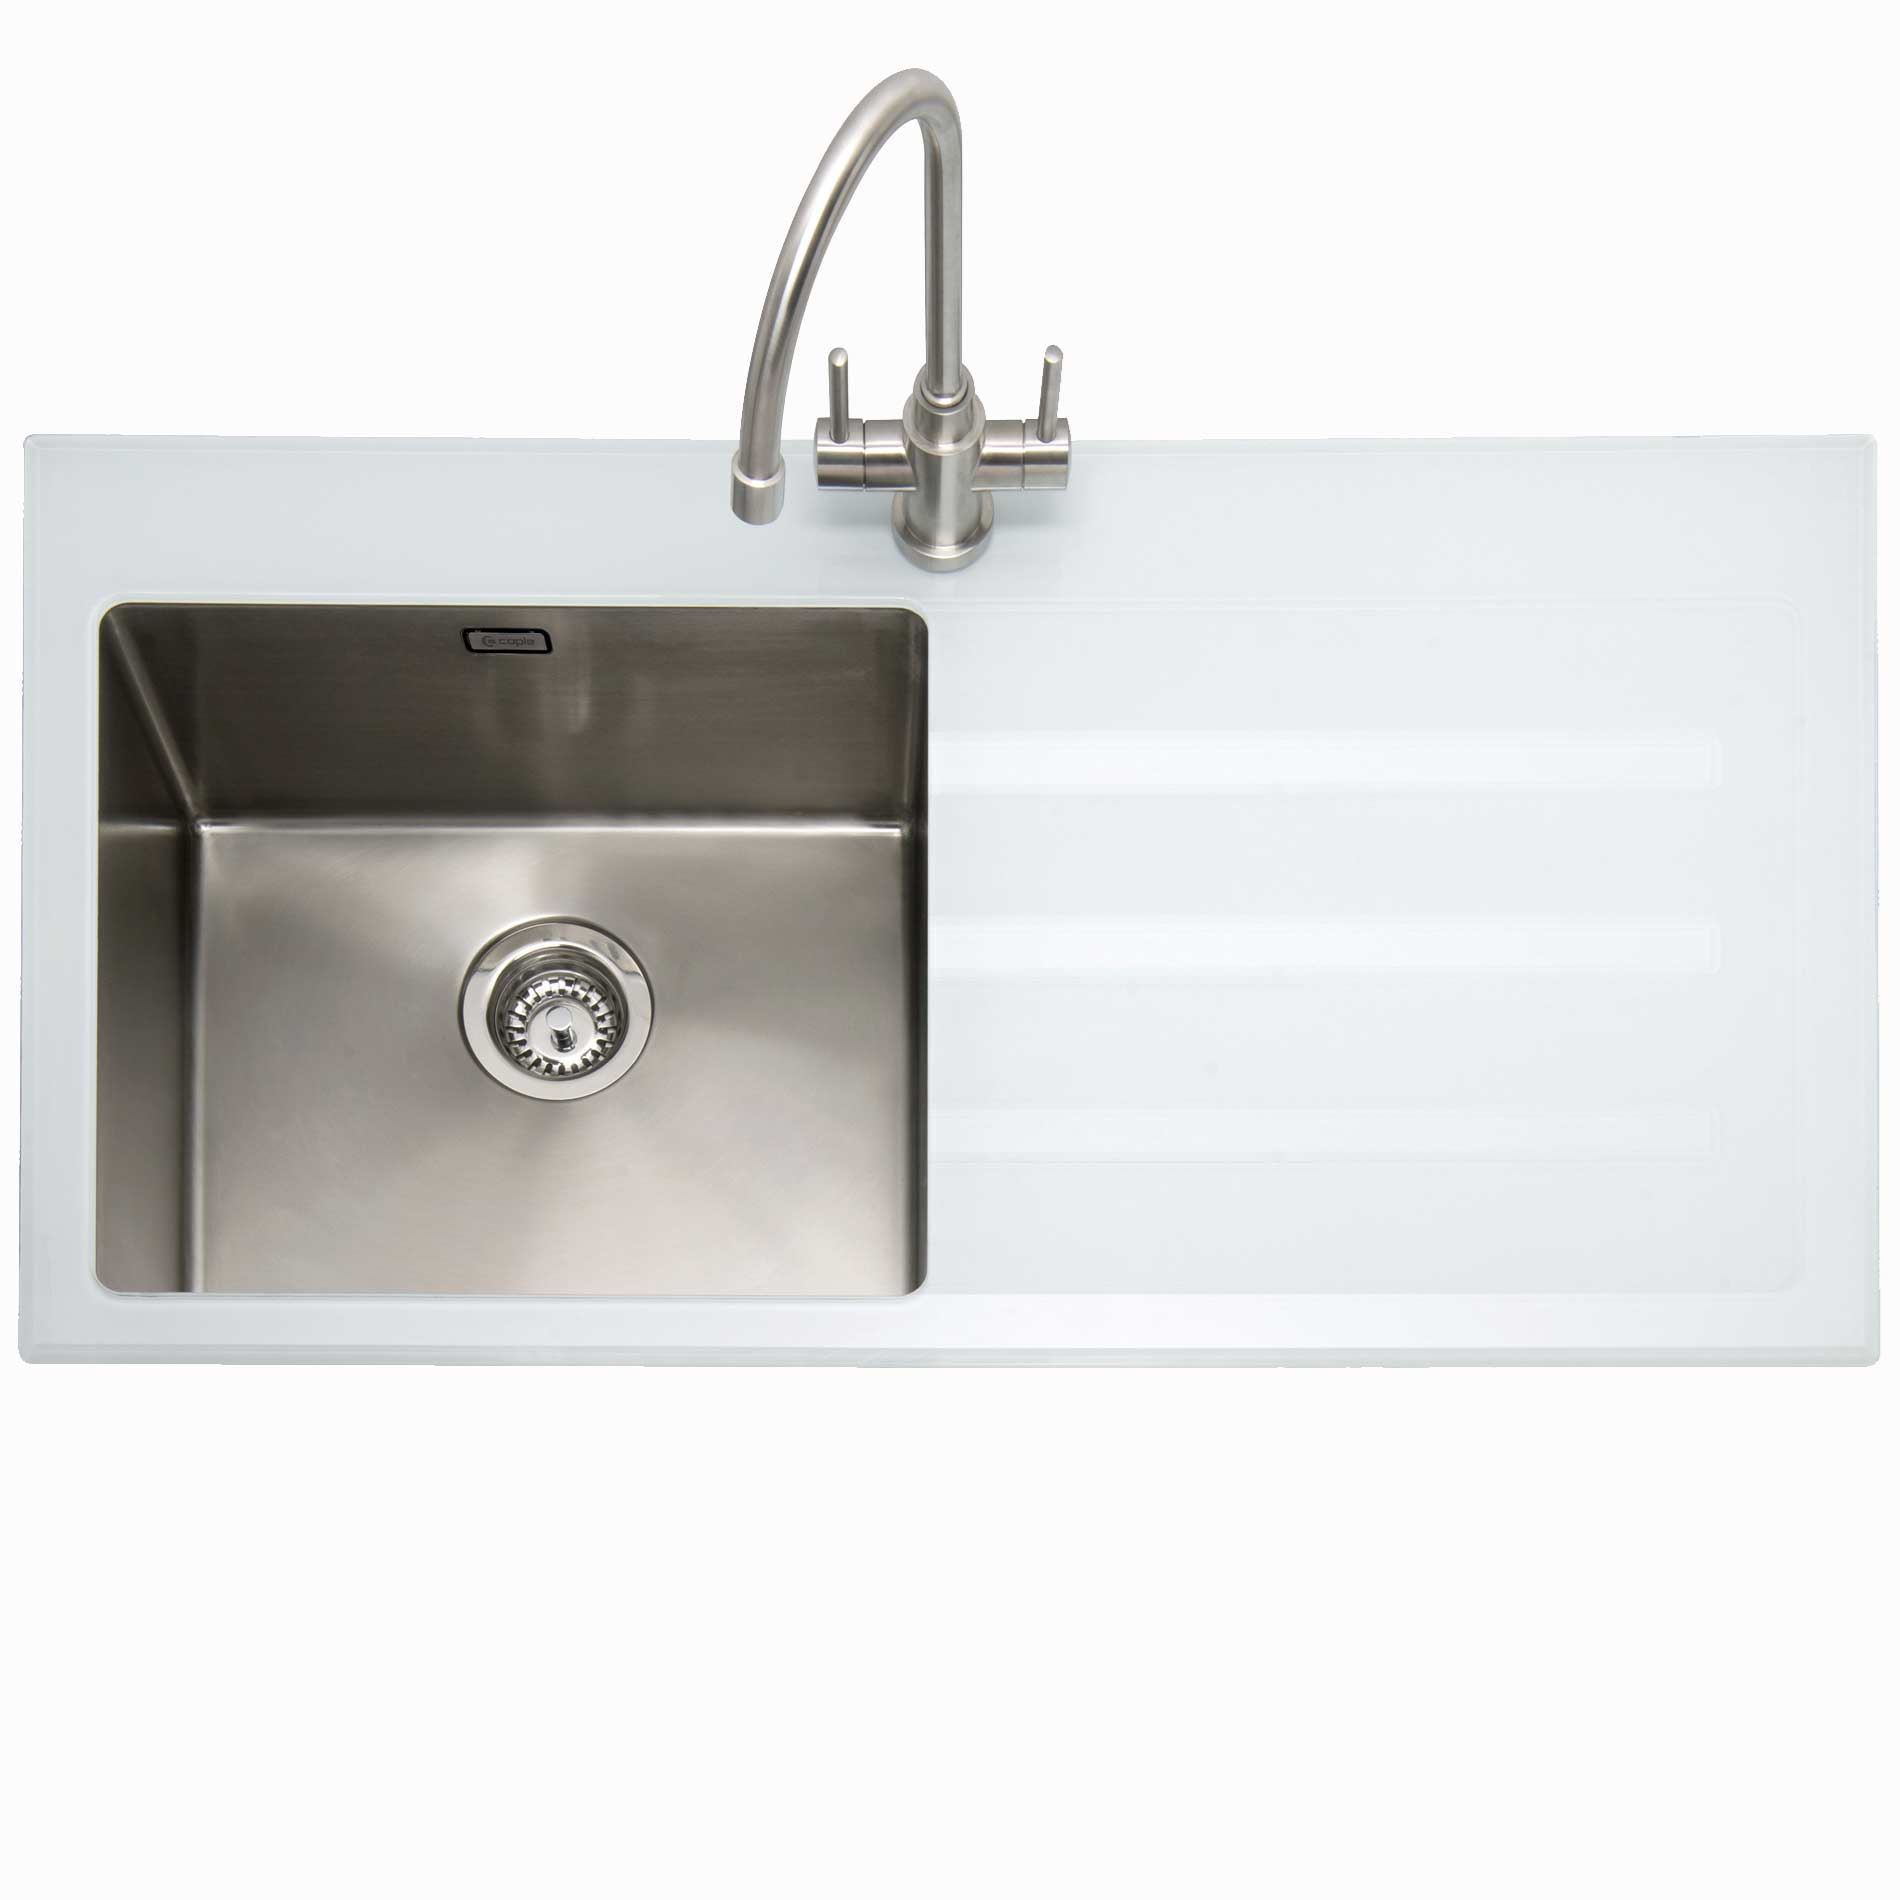 Caple vitrea 100 stainless steel and white glass sink kitchen picture of vitrea 100 stainless steel and white glass sink workwithnaturefo